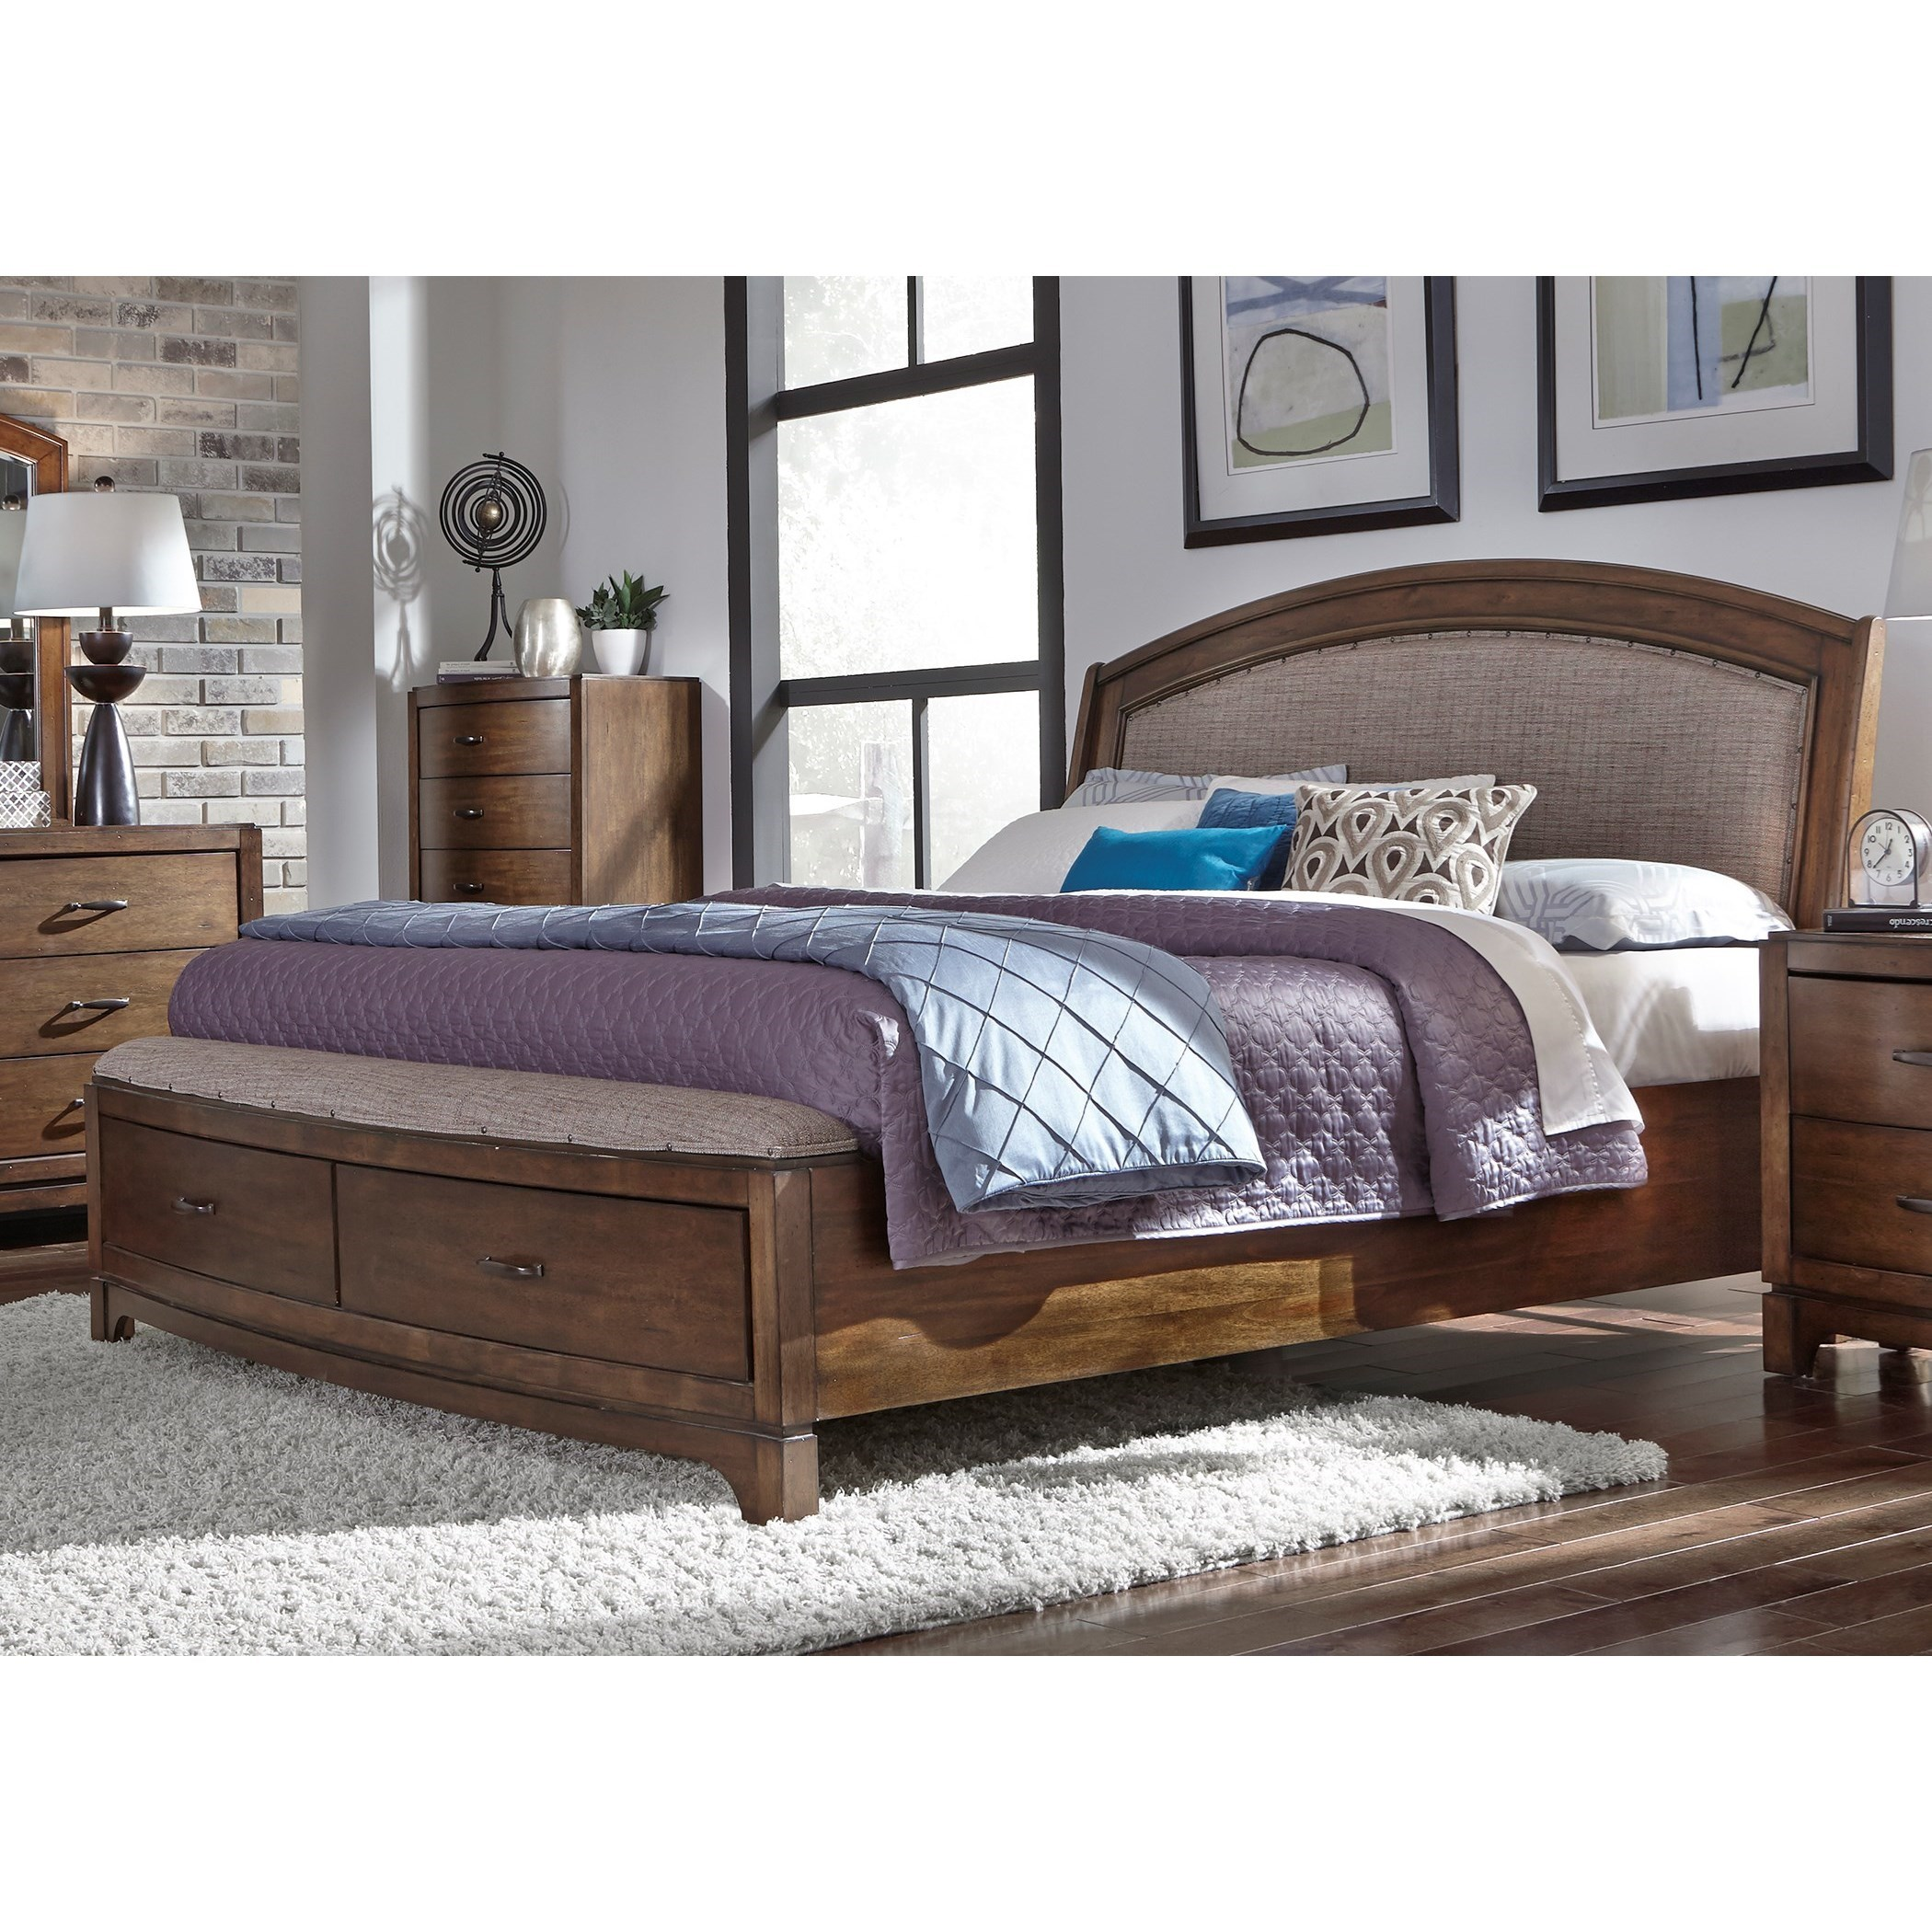 Liberty Furniture Avalon III King Storge Bed with Upholstered Headboard - Item Number: 705-BR-KSB